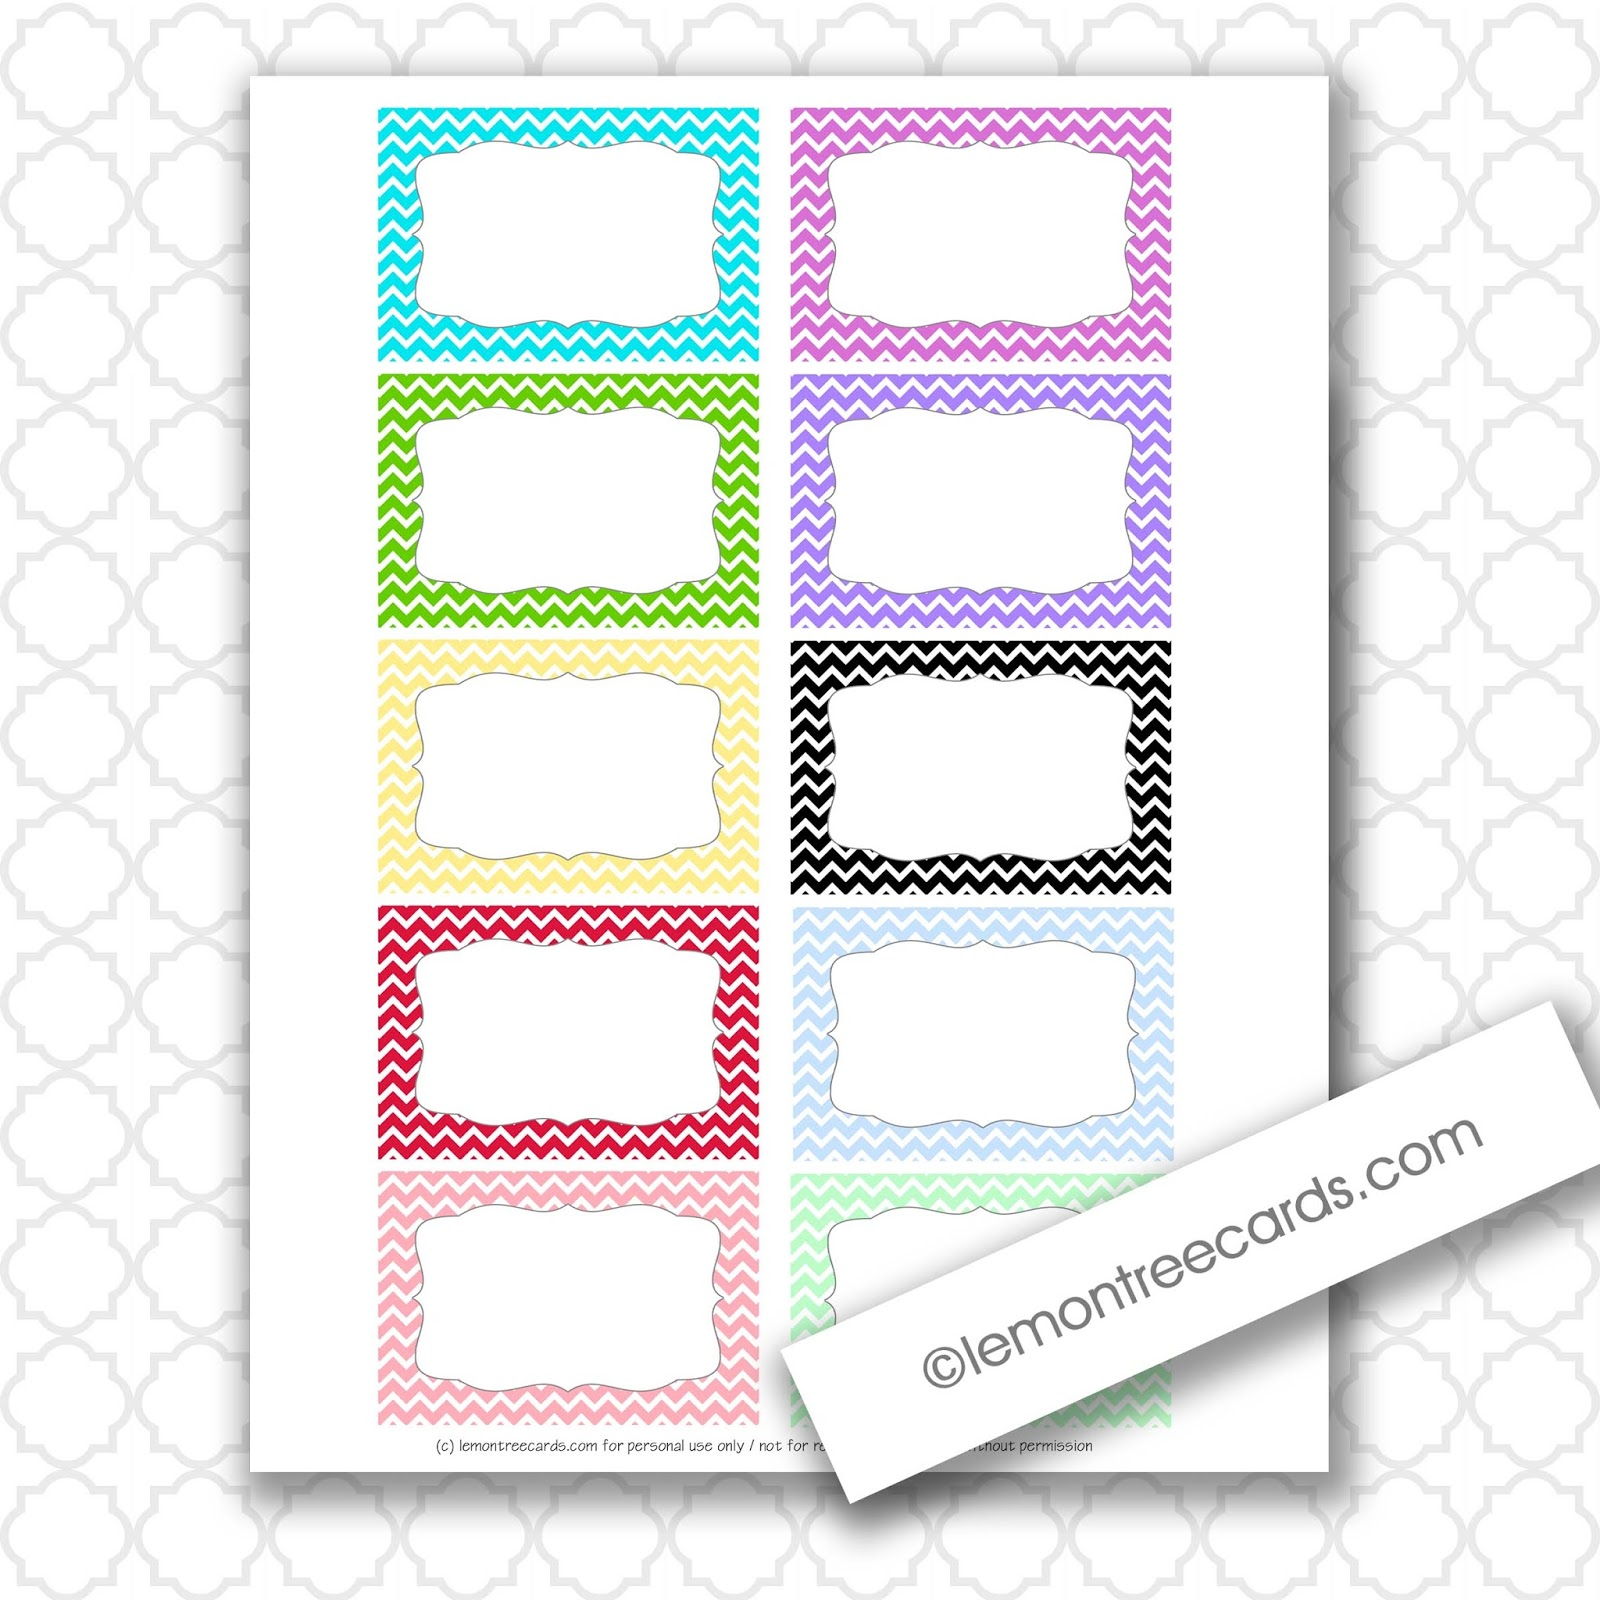 It's just a photo of Priceless Printable Note Card Template